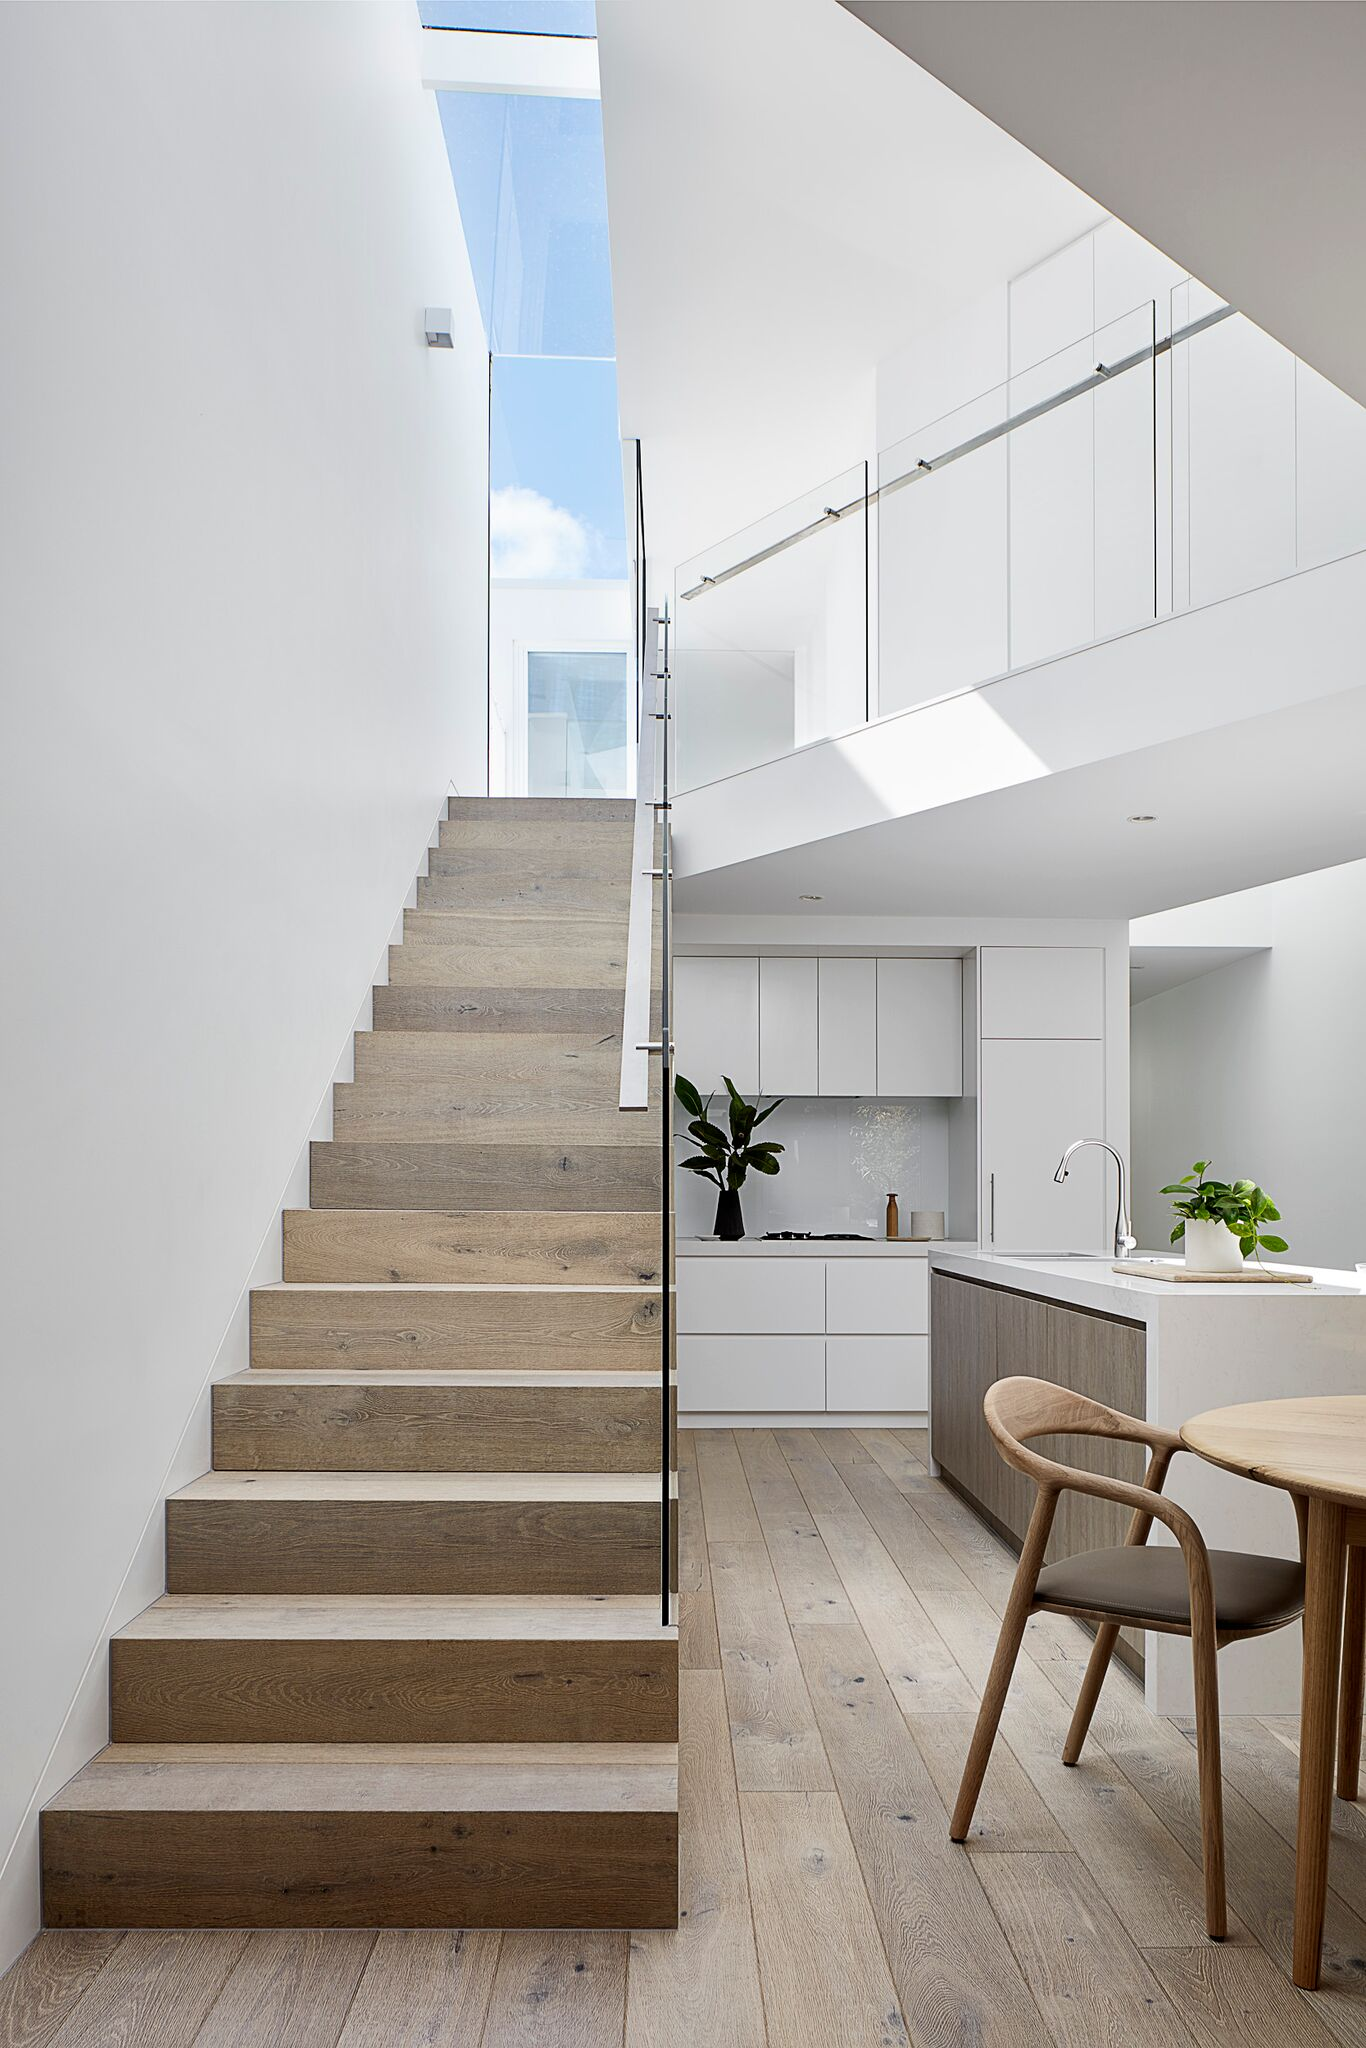 Gallery Of Oban Street By Mittelman Amsellem Architects Local Australian Design & Interiors South Yarra, Melbourne Image 7